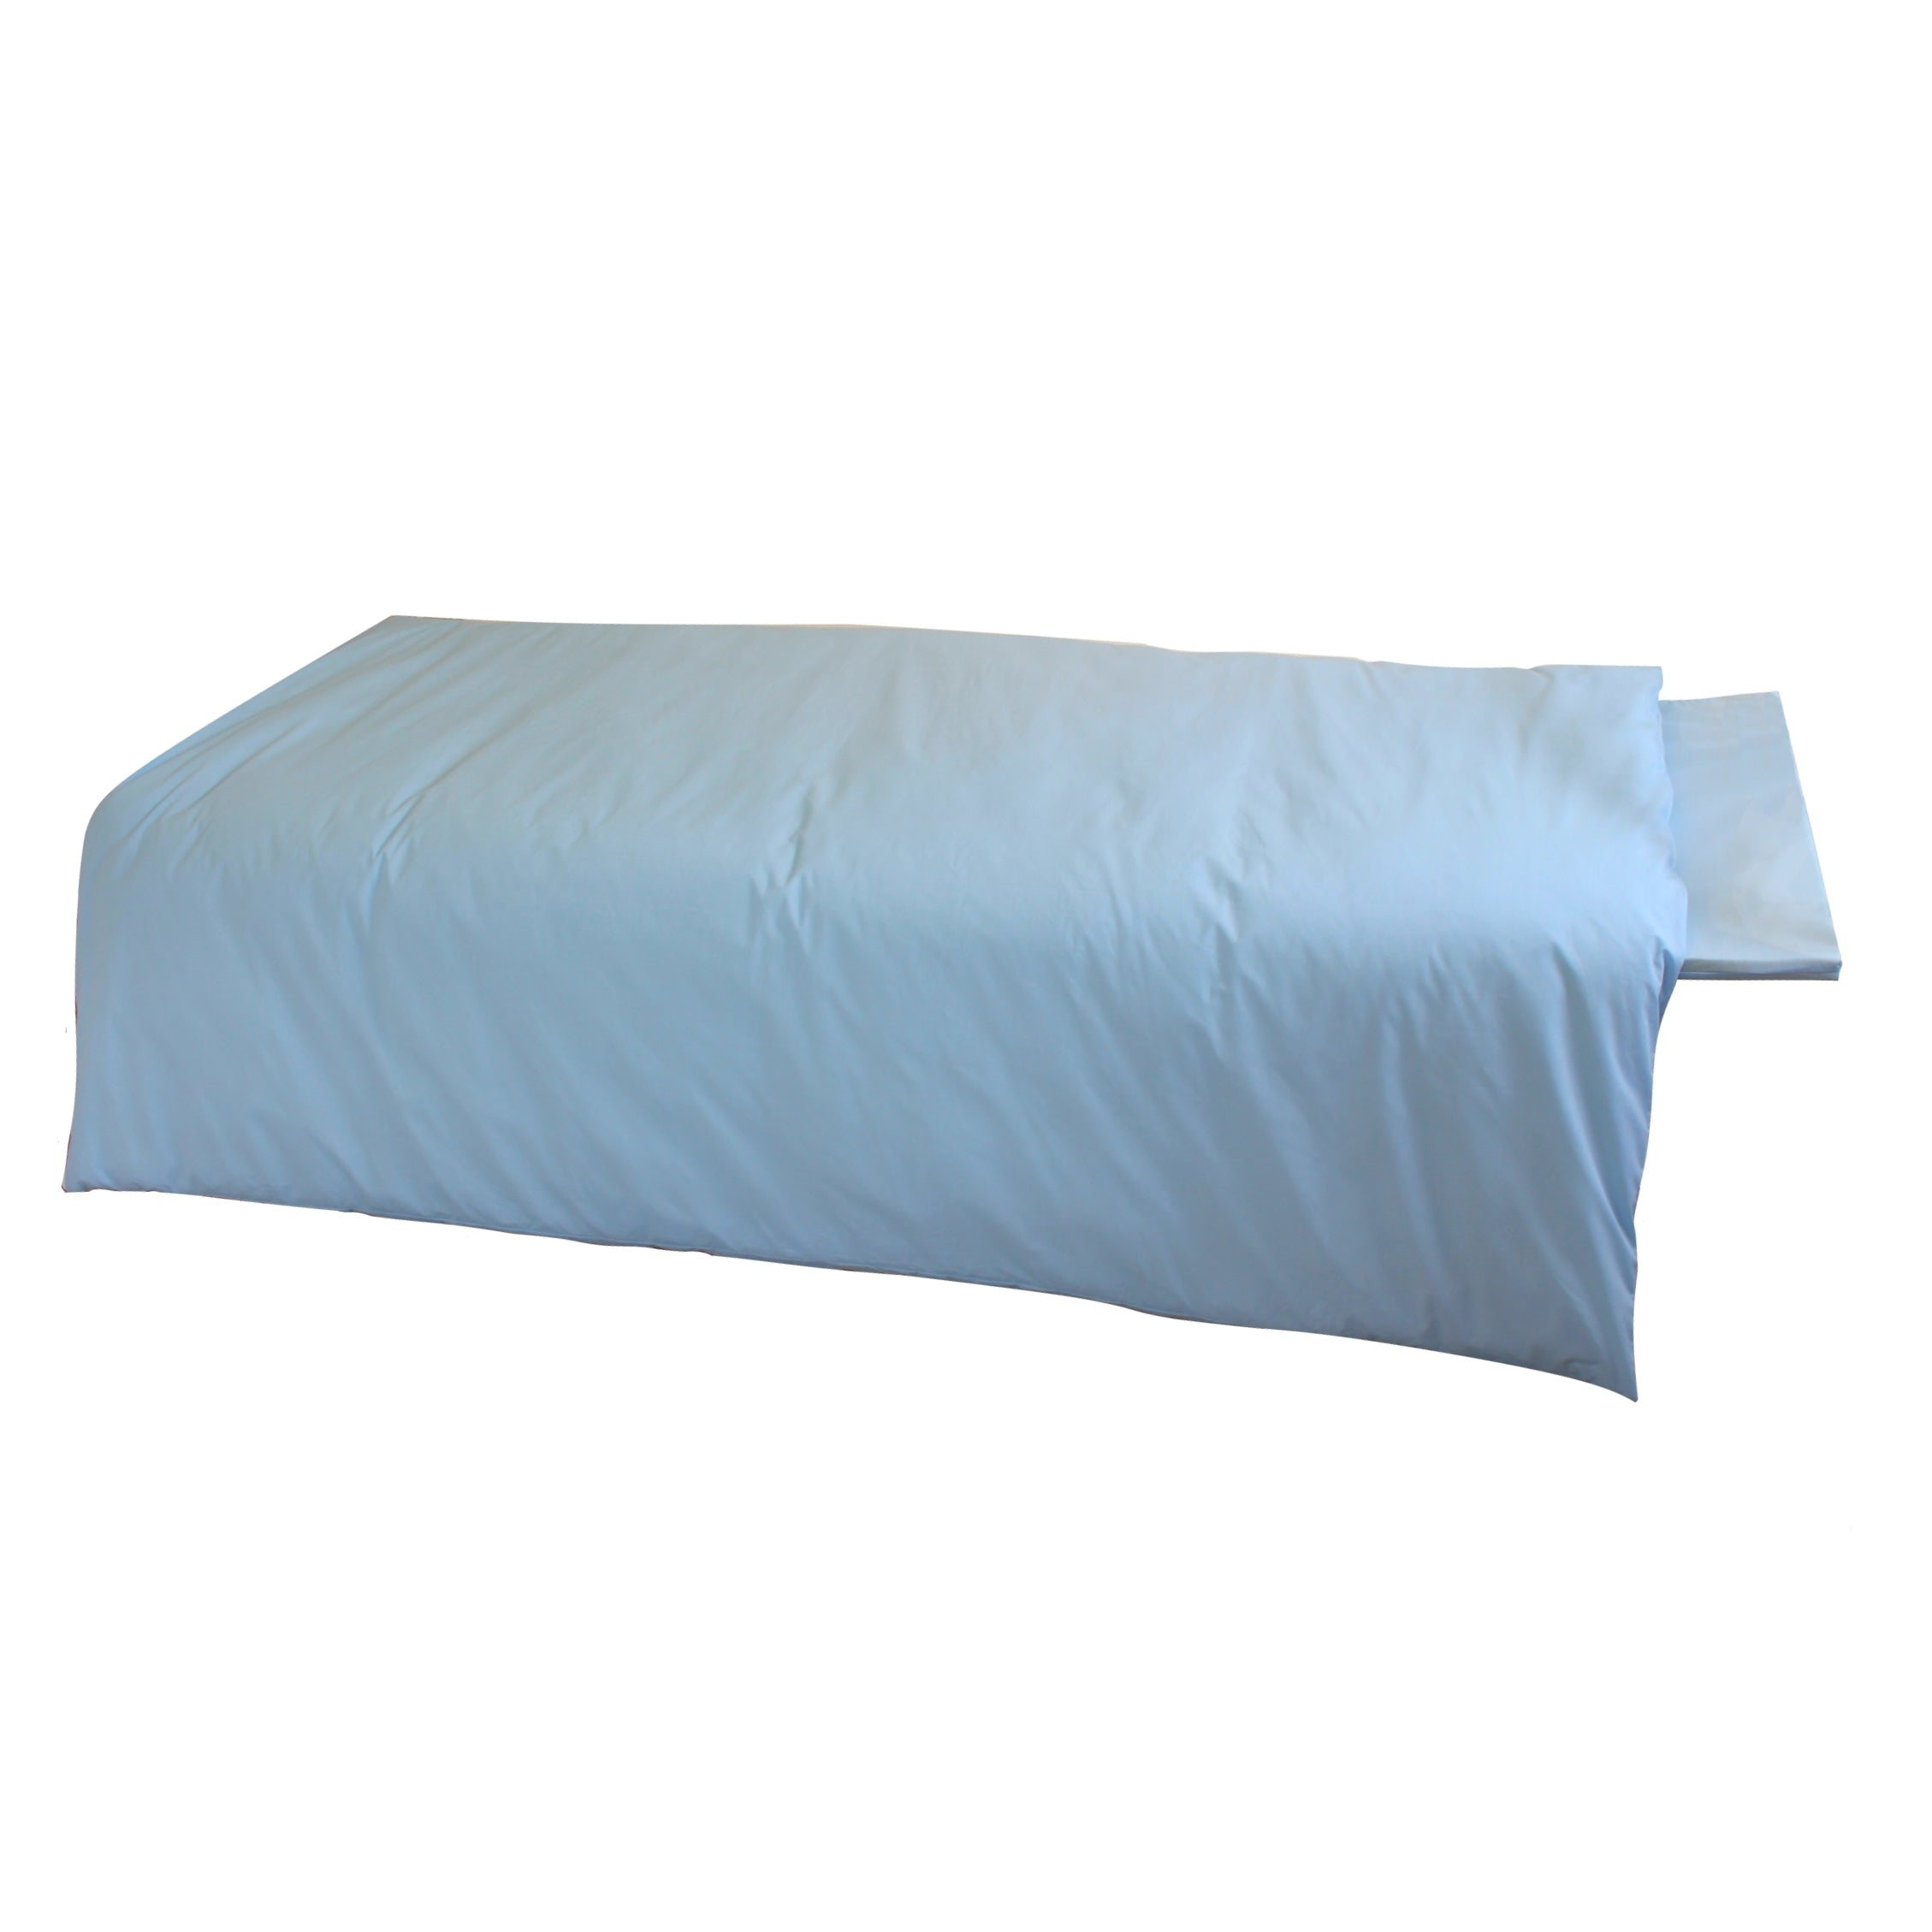 Side view of the DREAME Memory Foam Travel Sleeping Bag